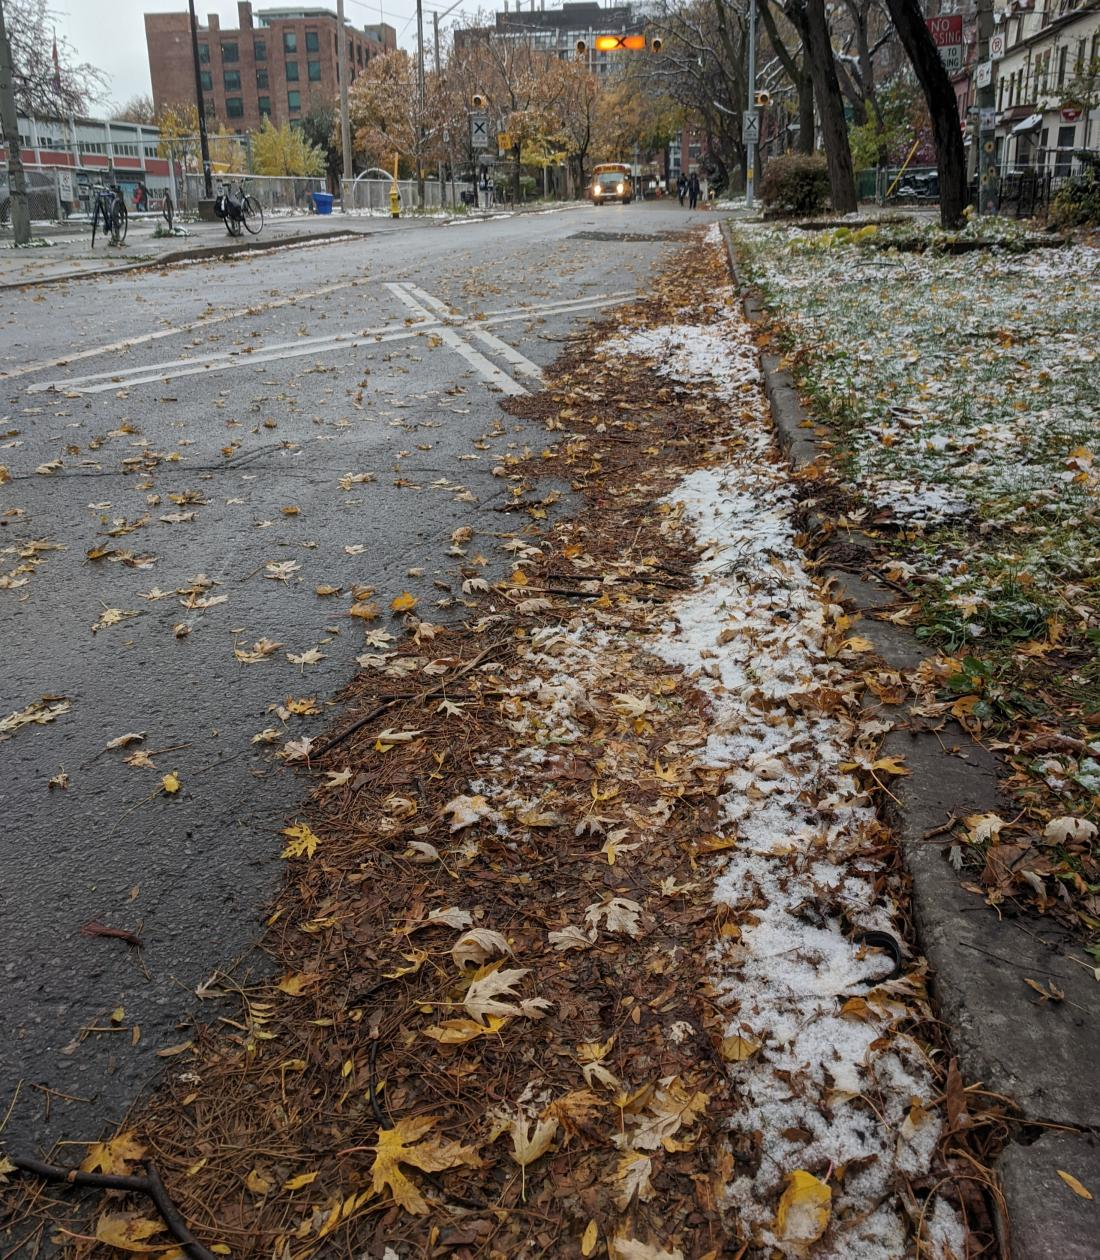 Leaves and snow clogging the edge of a small street.